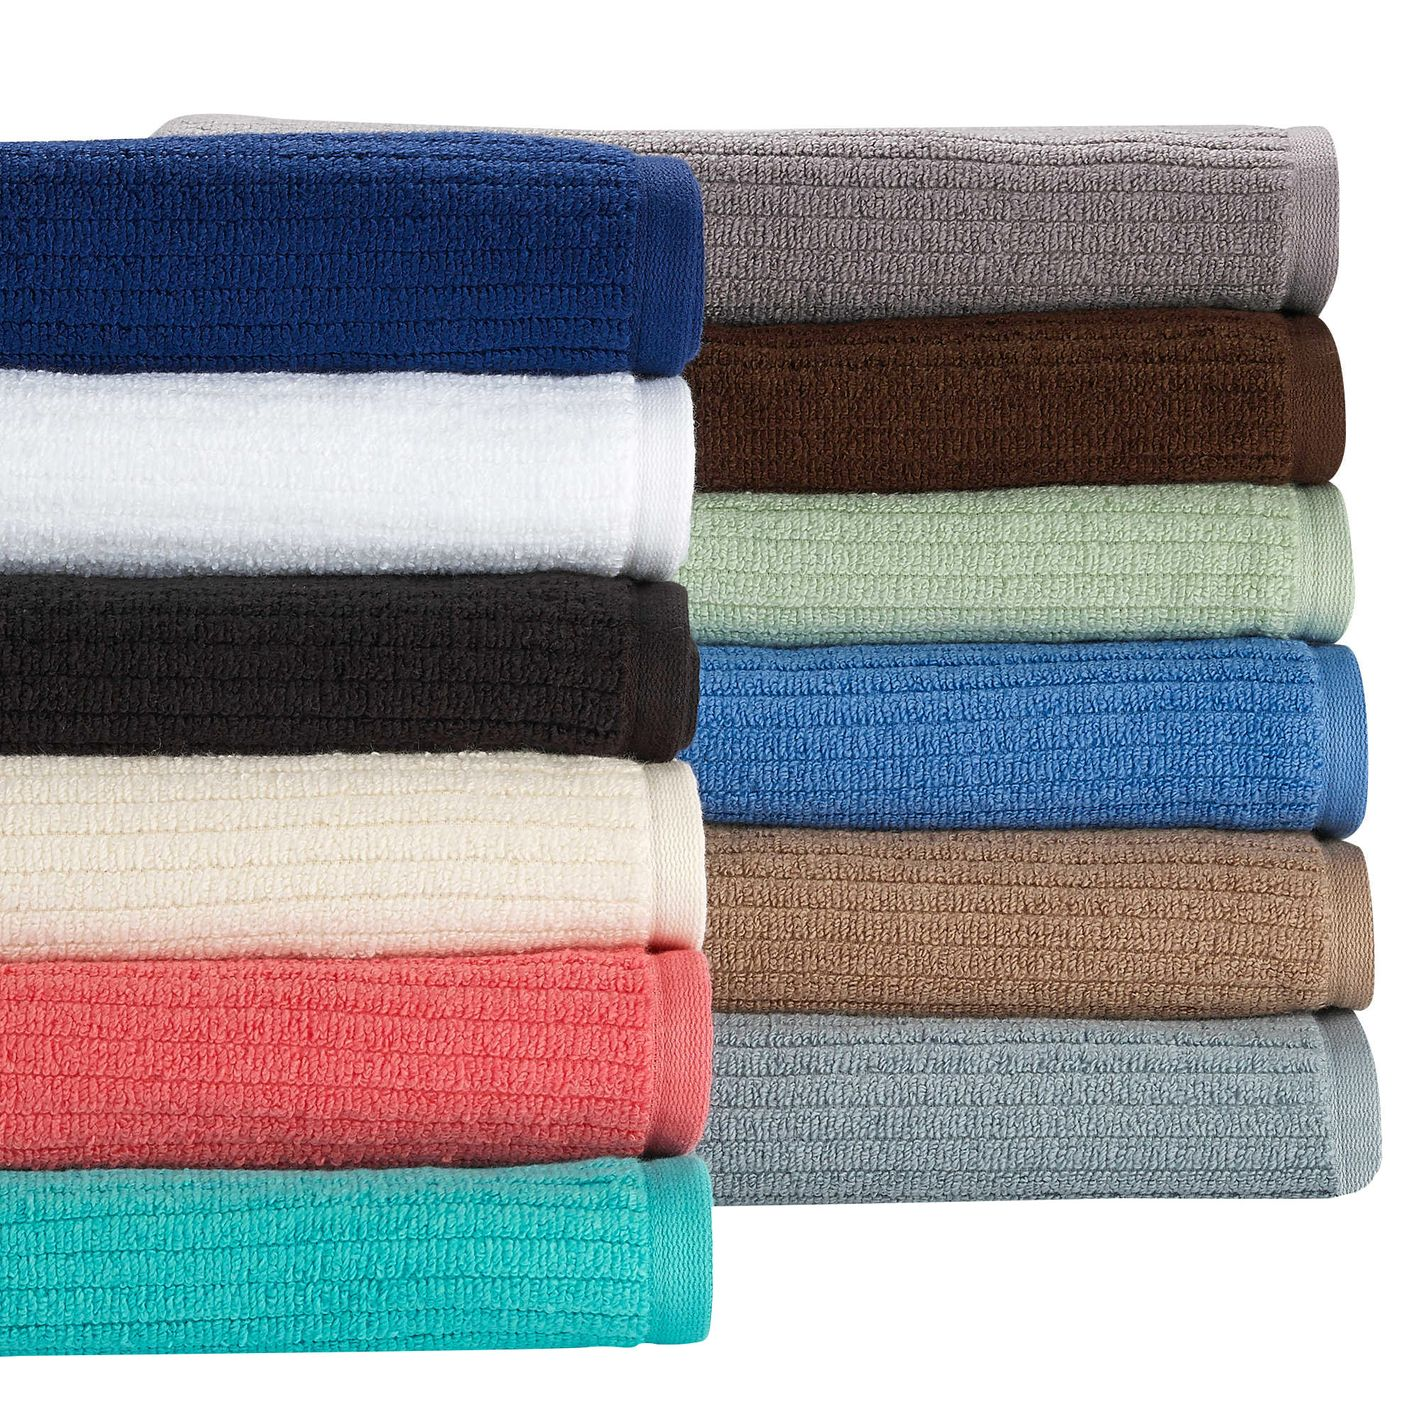 Dri-Soft Plus Towels